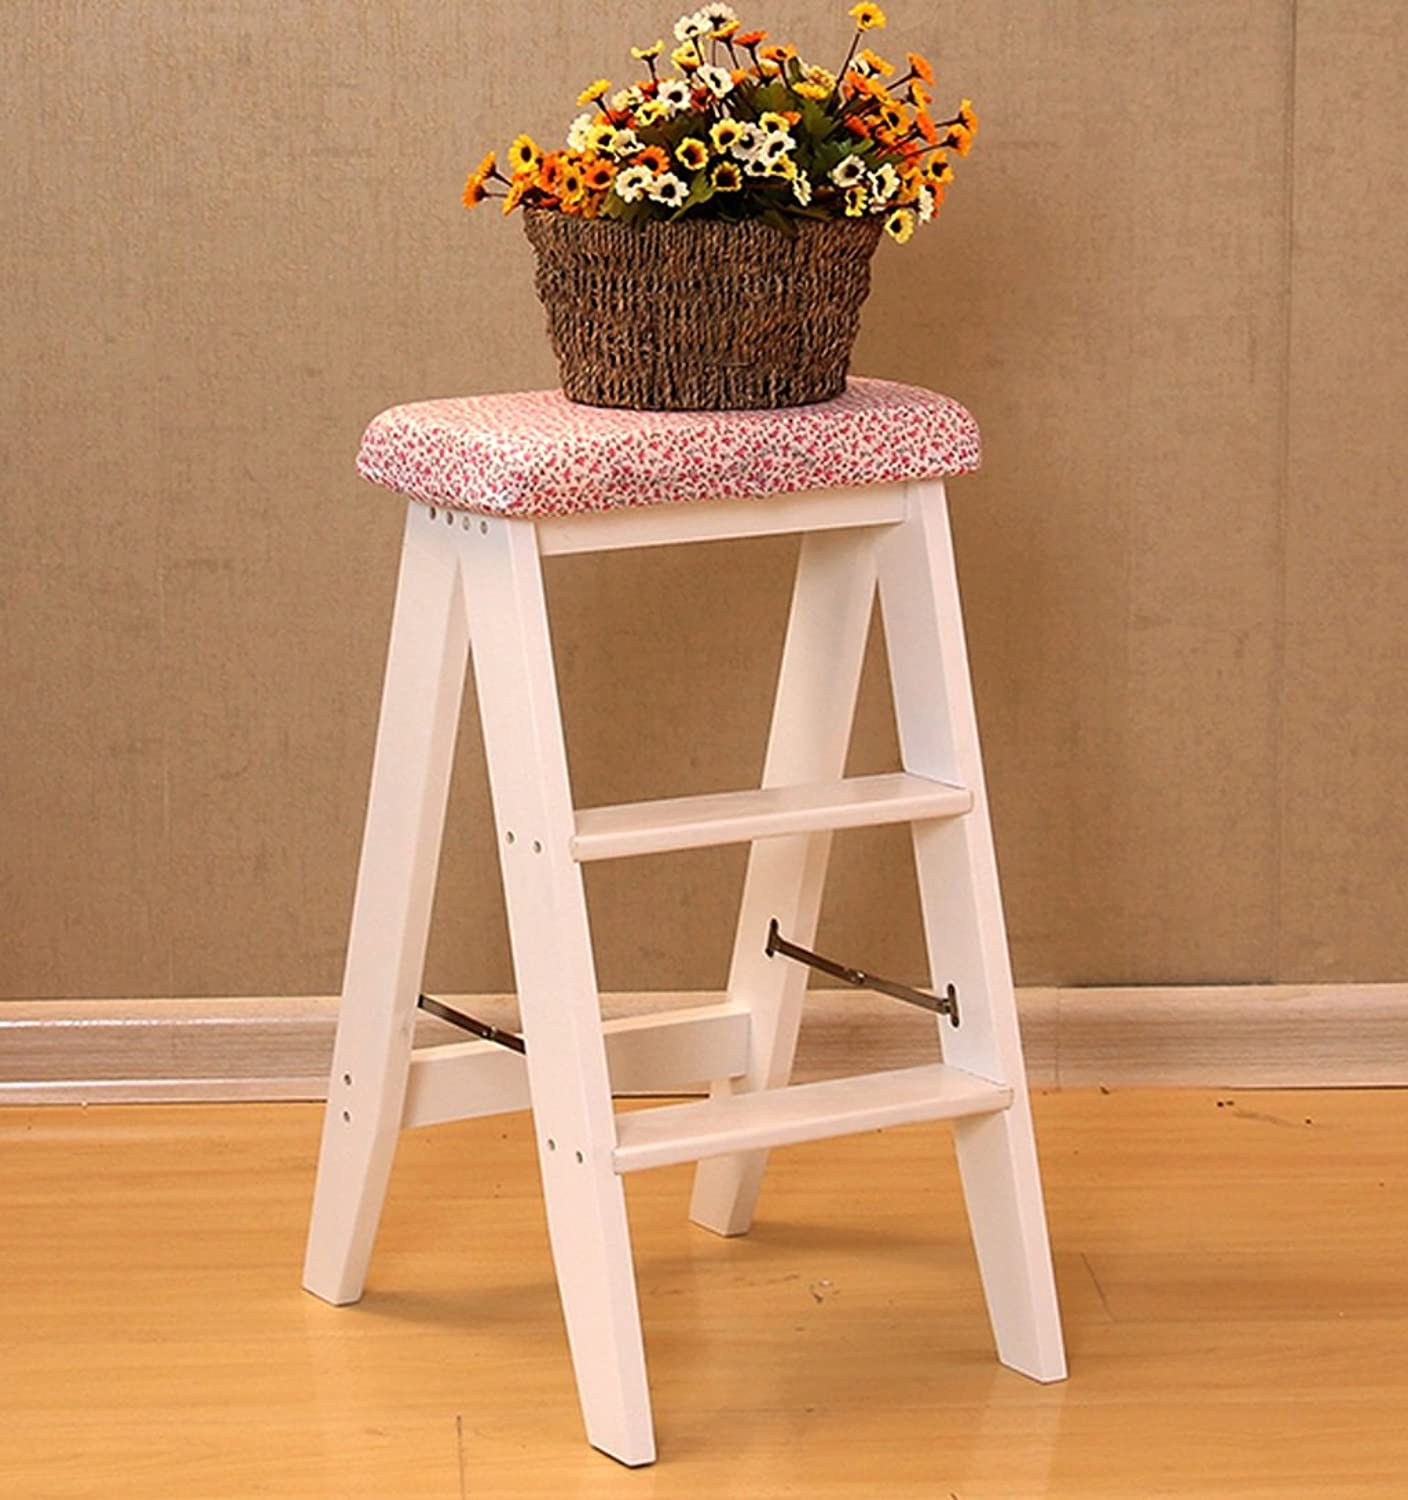 WFFXLL 3 Steps Step Stool,Solid Wood Folding Ladder Stool-Household Step Ladder Thickening Multi-Purpose,3 colors Step Stool (color   White)